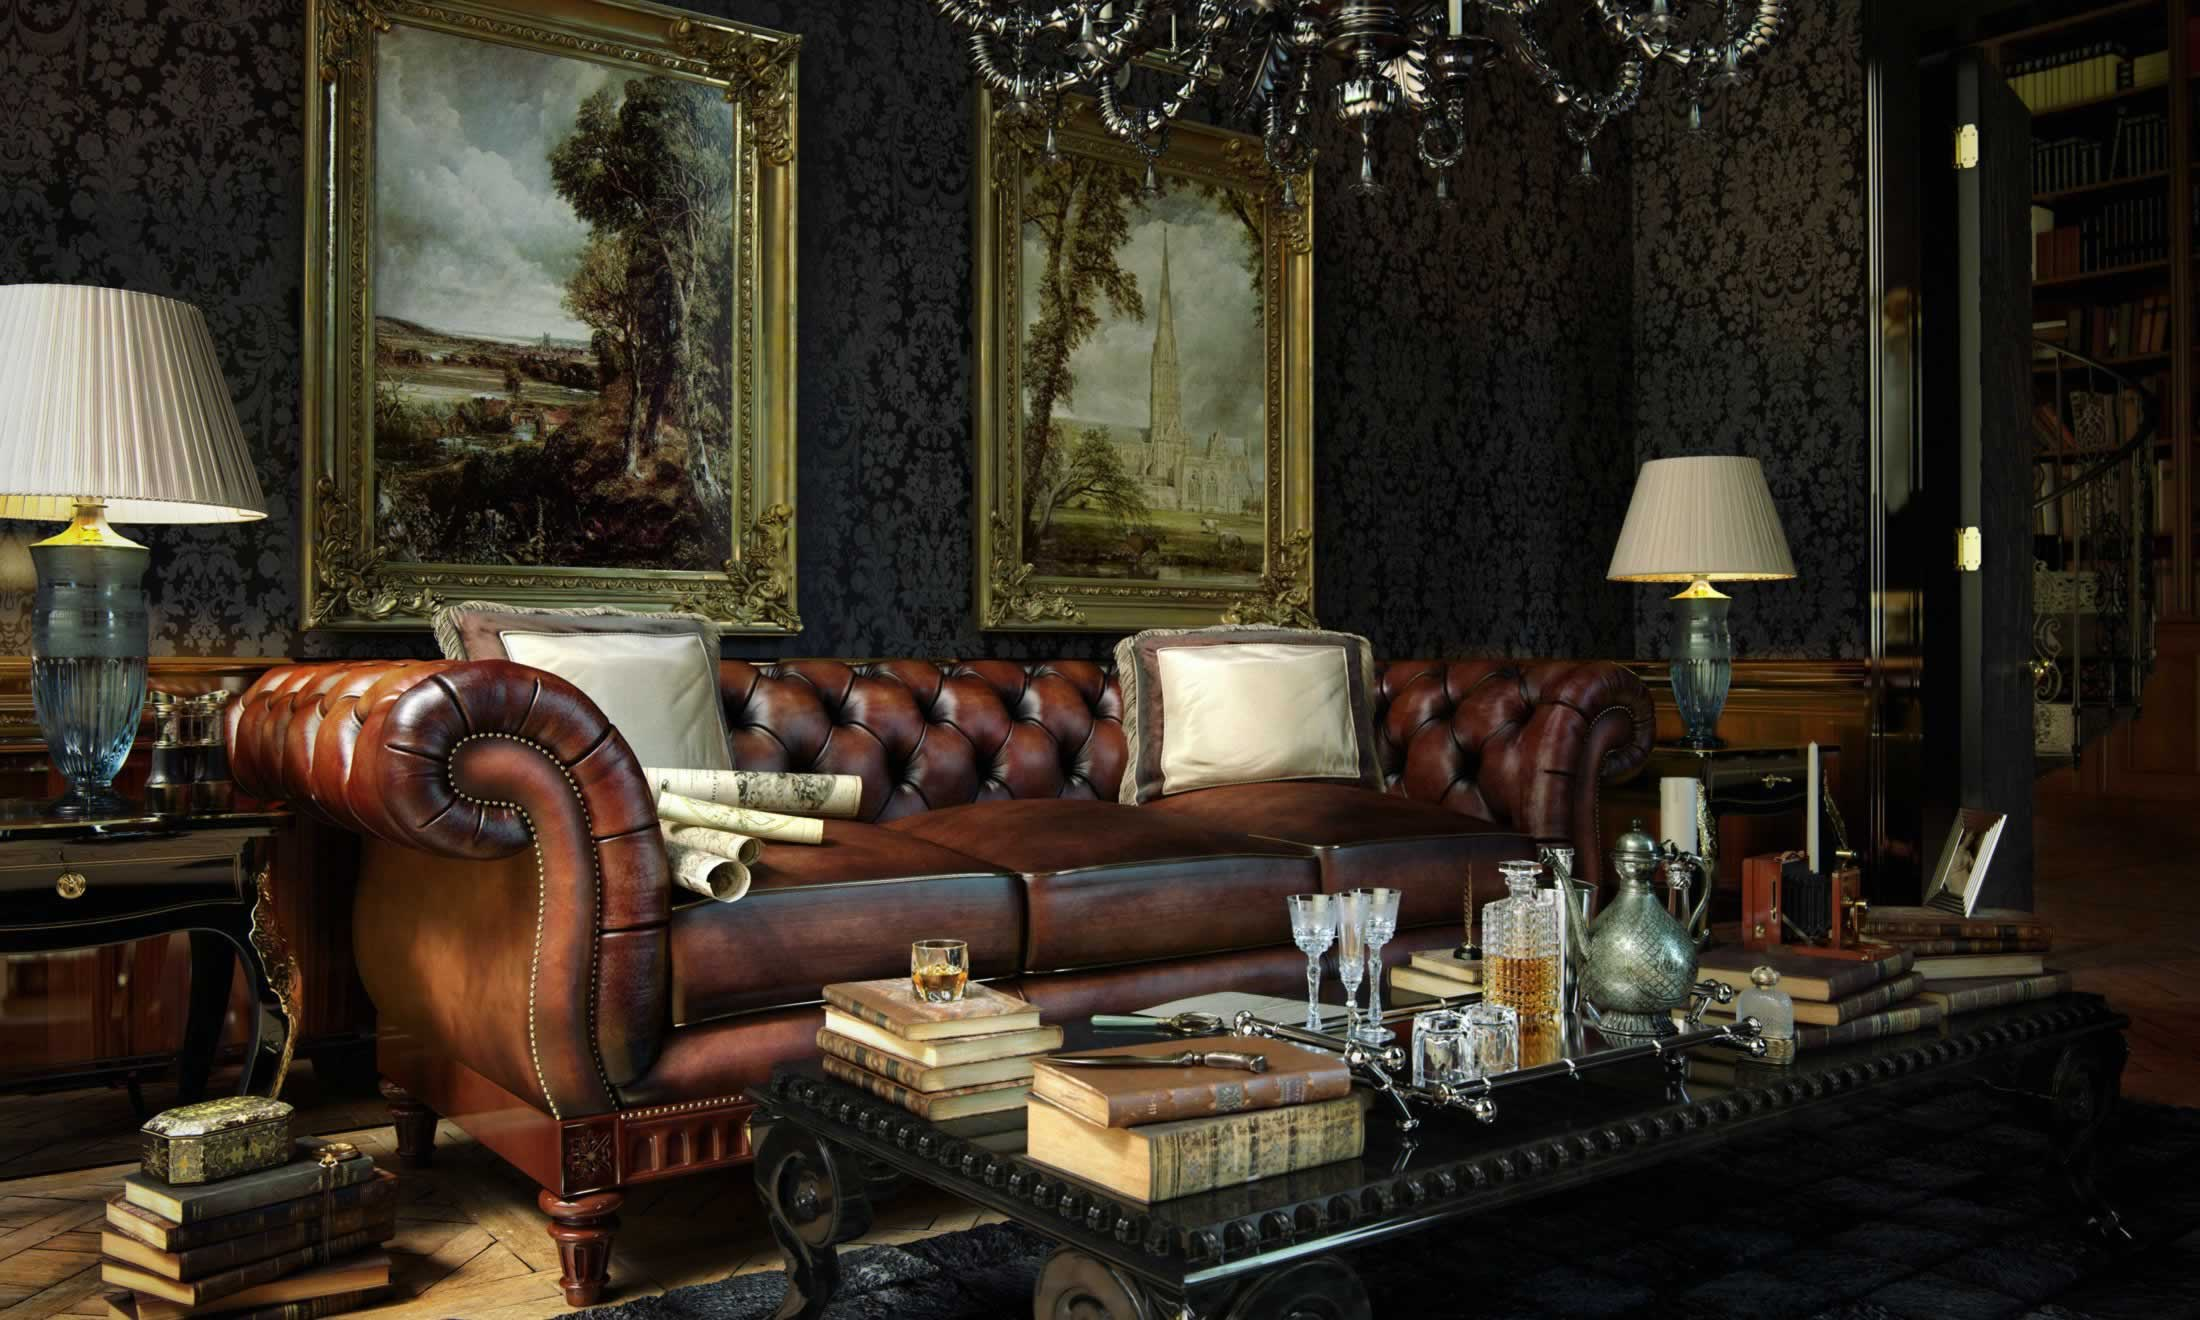 leather chesterfield sofa in a grand hotel lobby